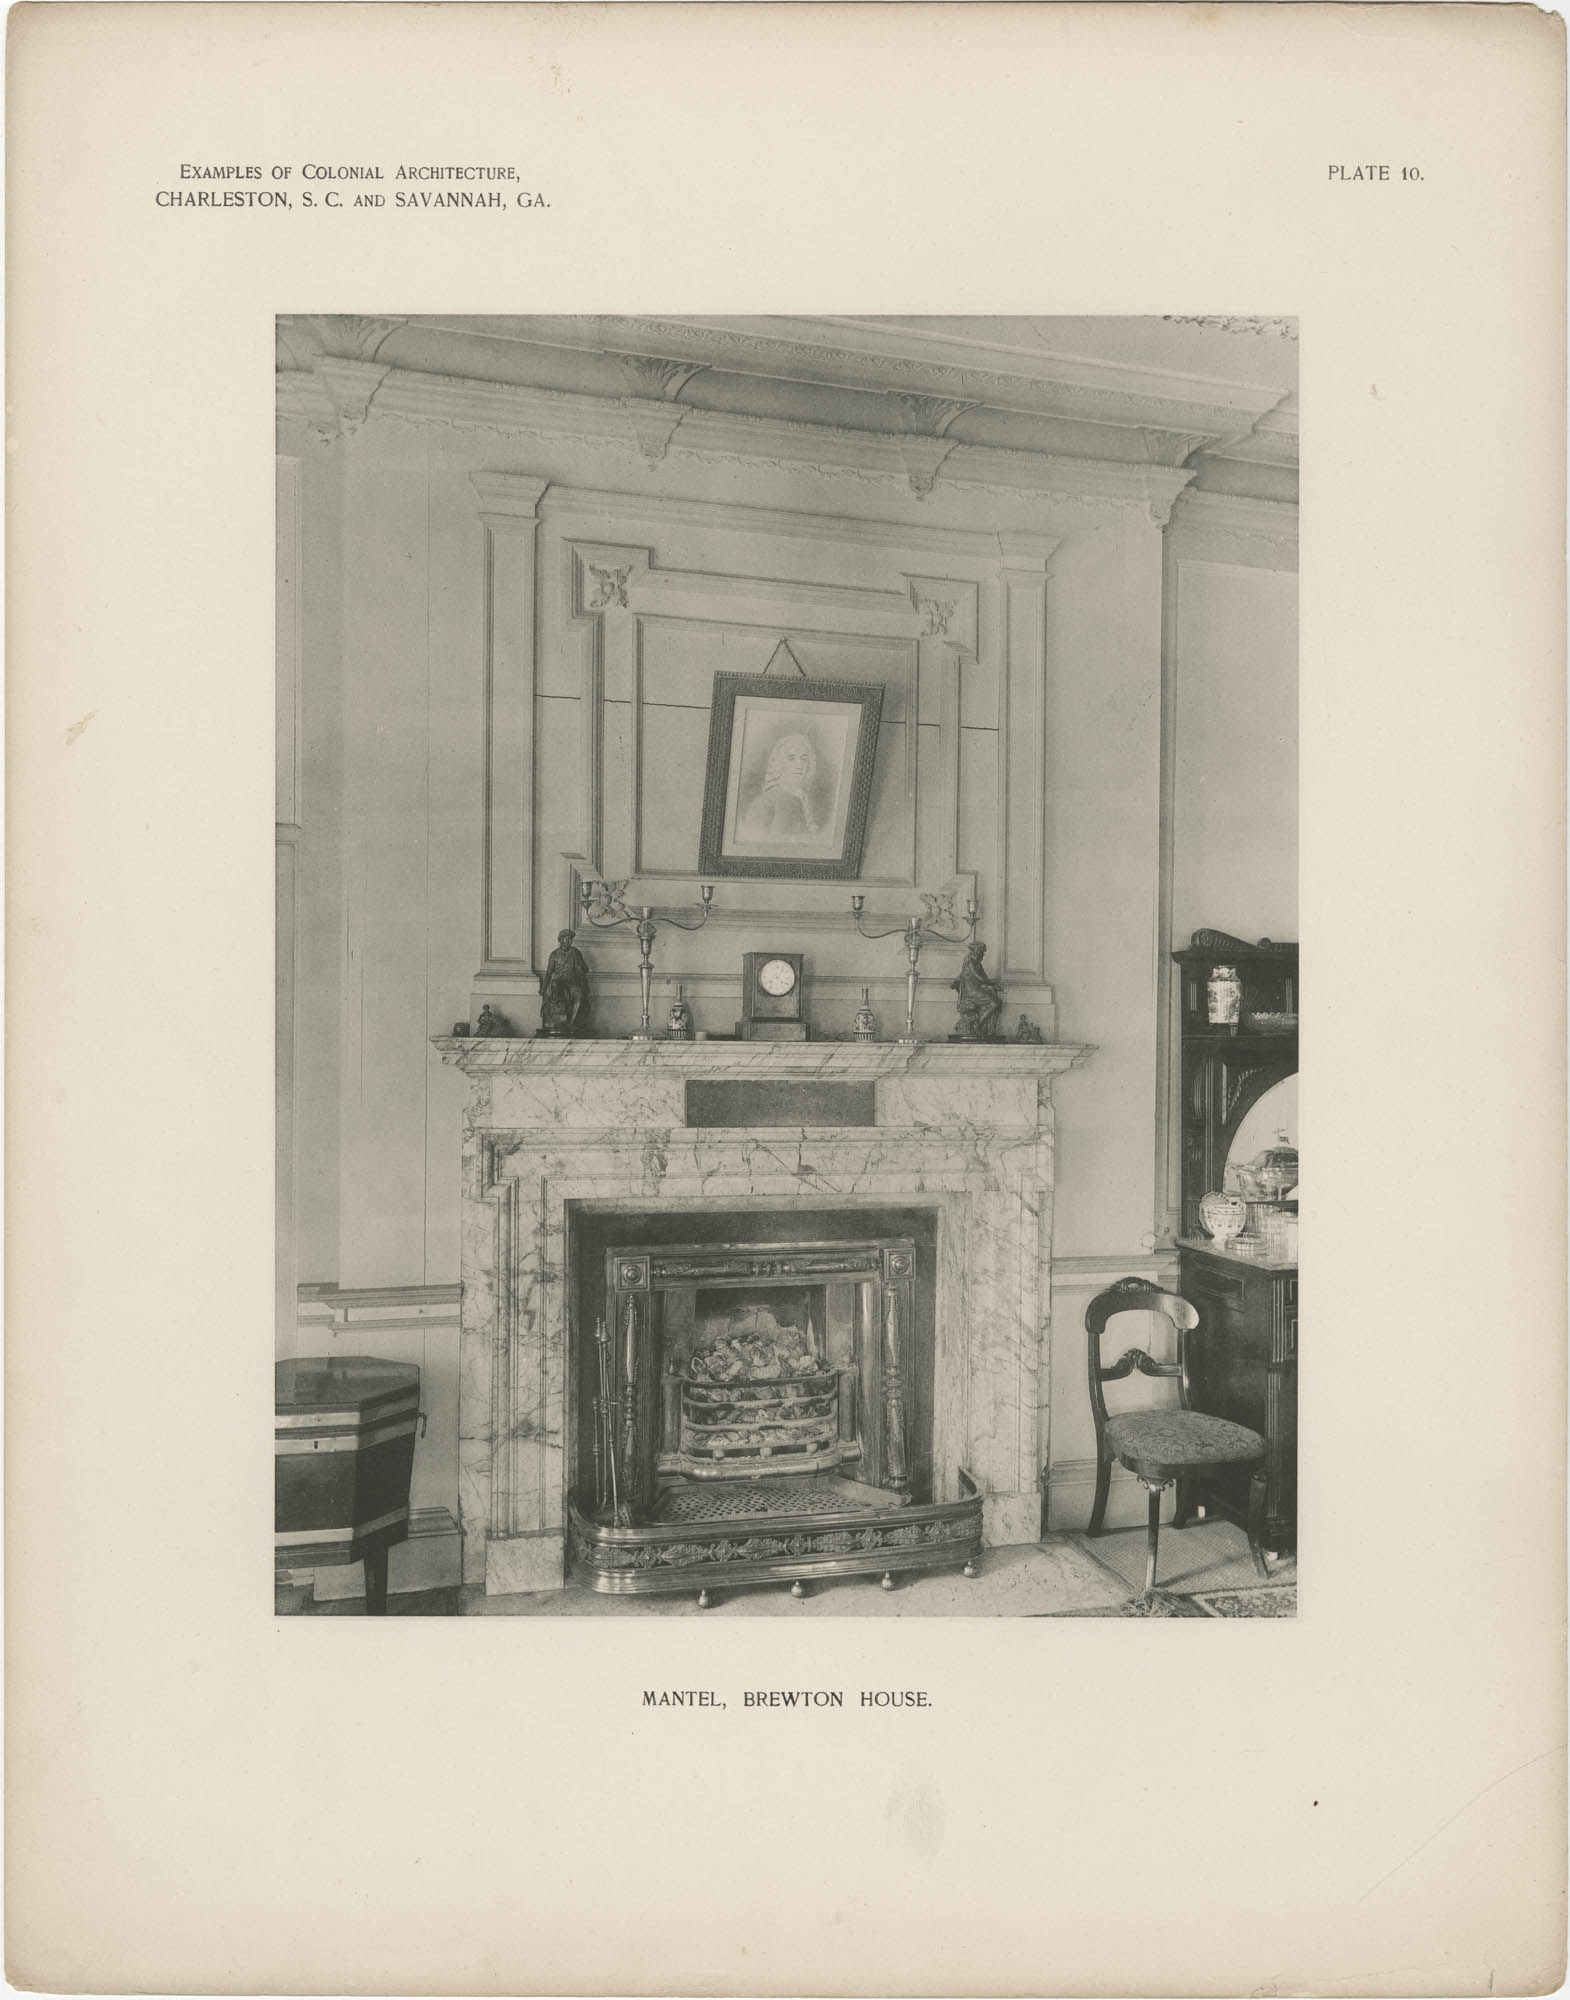 Plate 10: Mantel, Brewton House